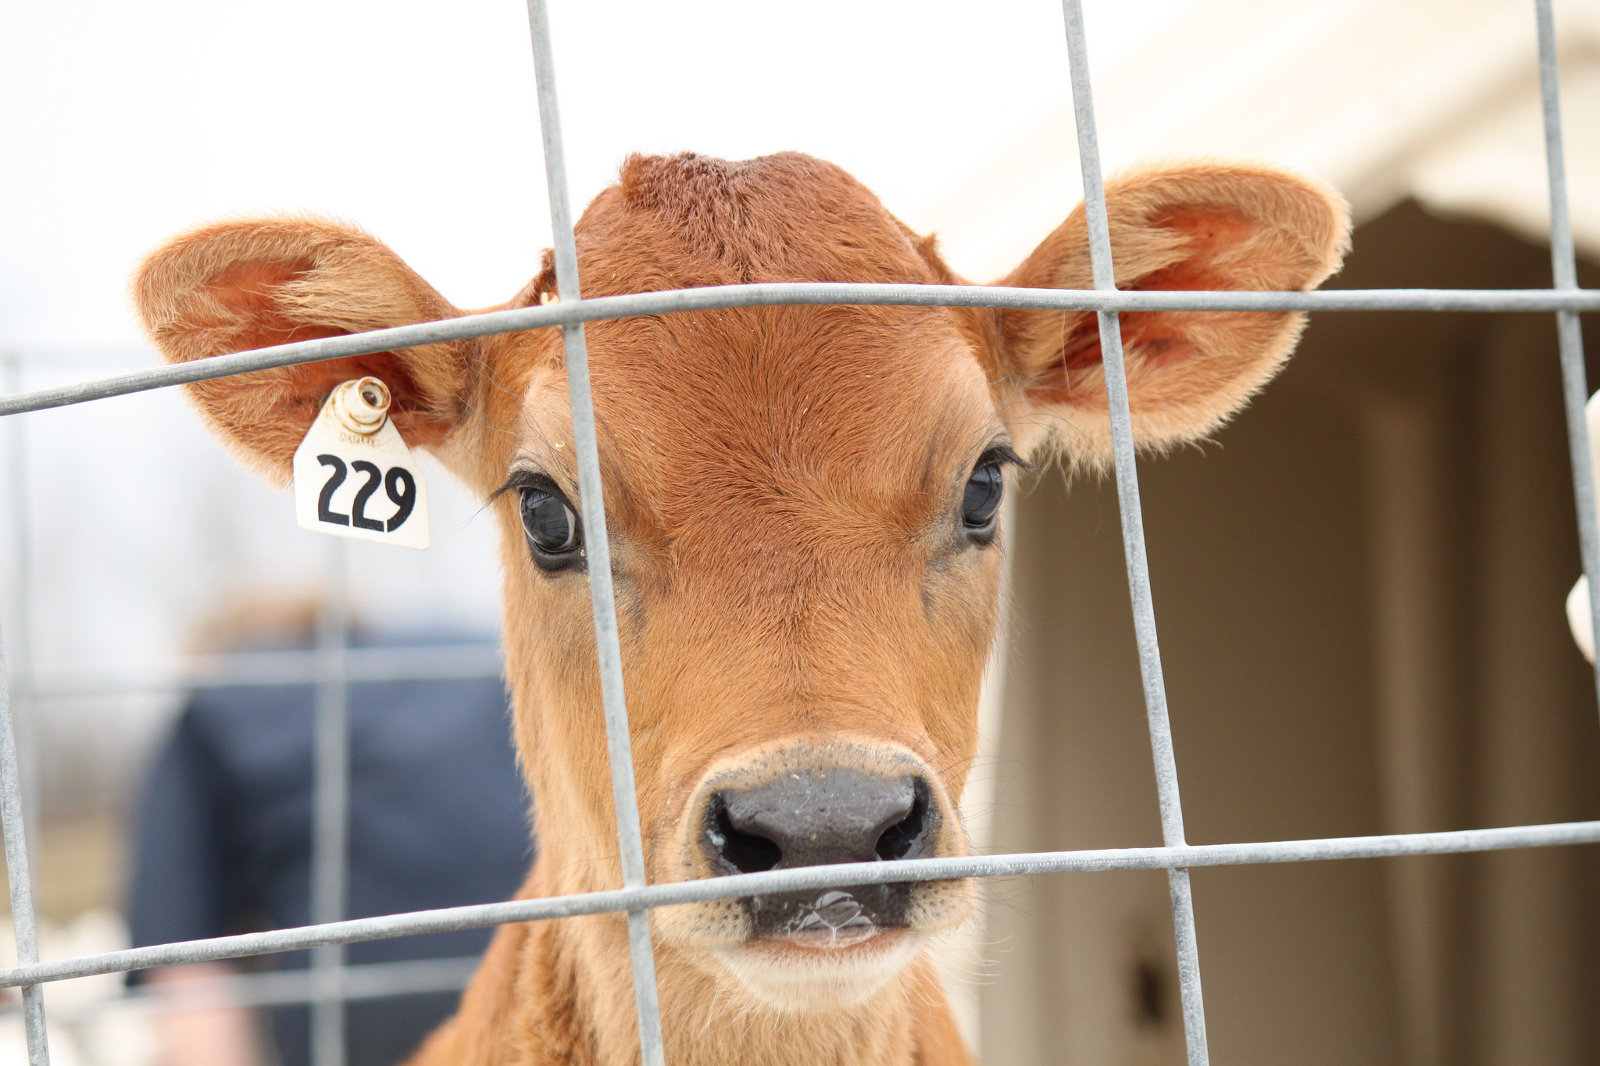 These 5 Stories of Cows Who Survived the Dairy Industry are Sure To Make You Rethink Cheese